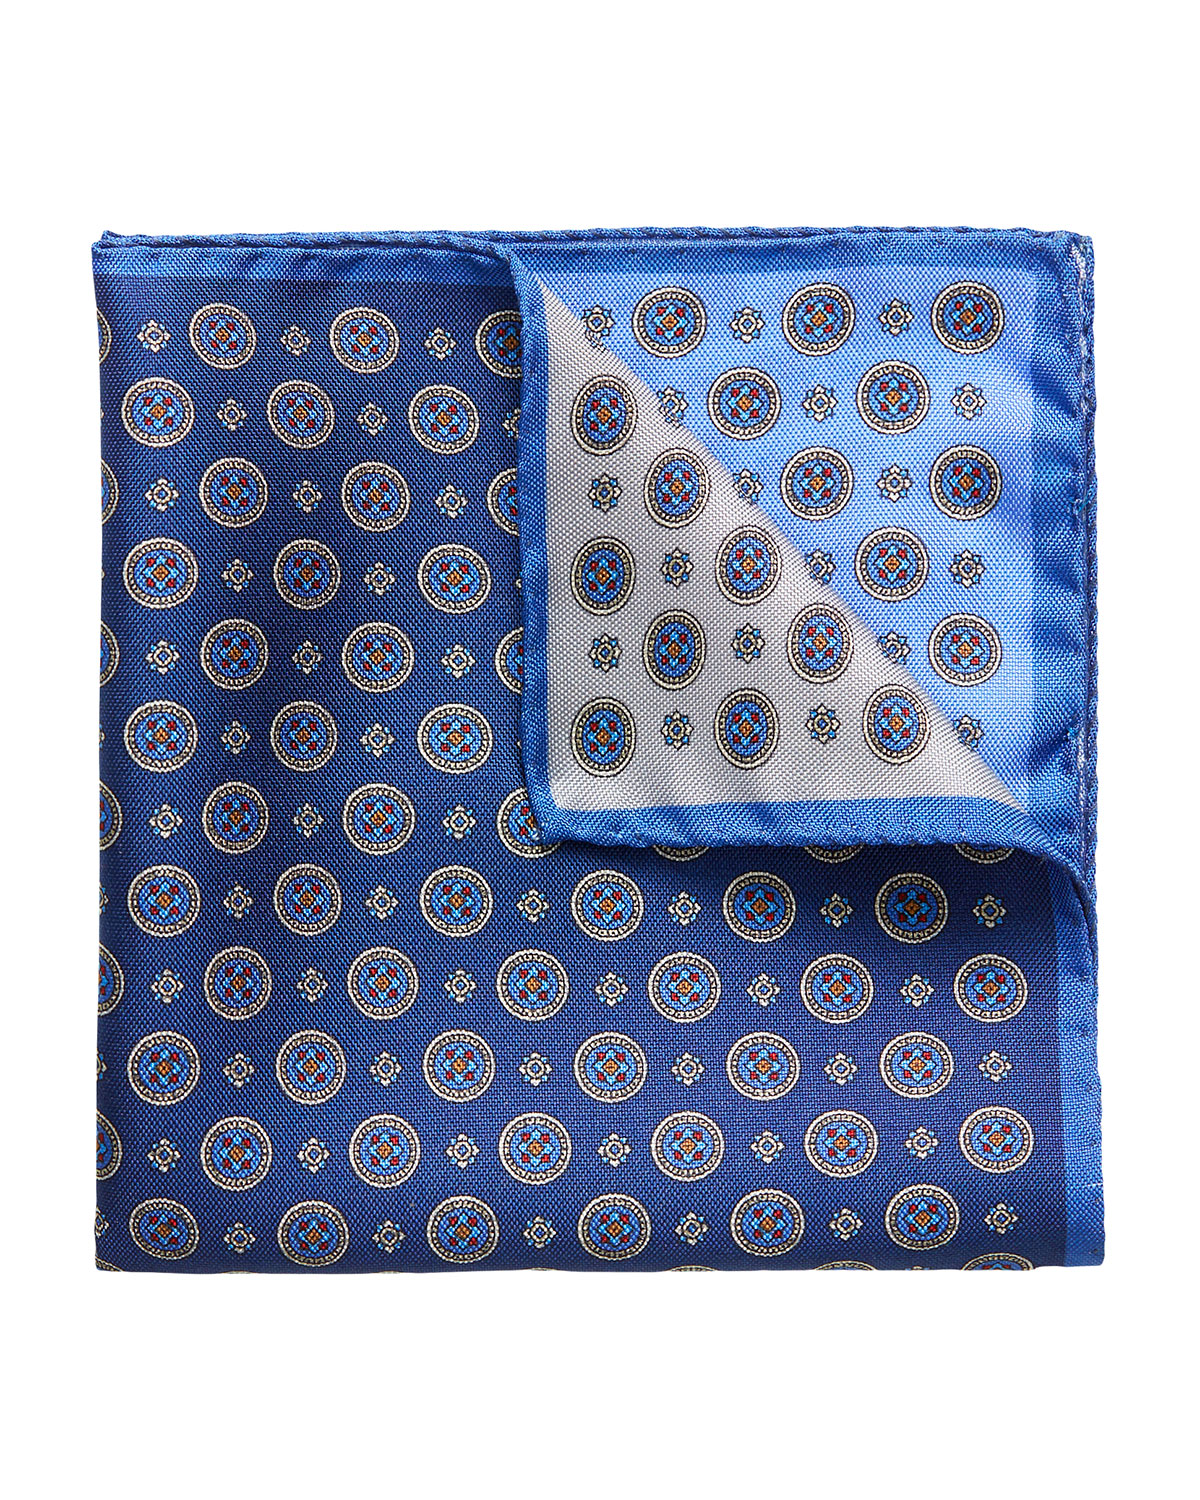 Men's Four-in-One Silk Pocket Square